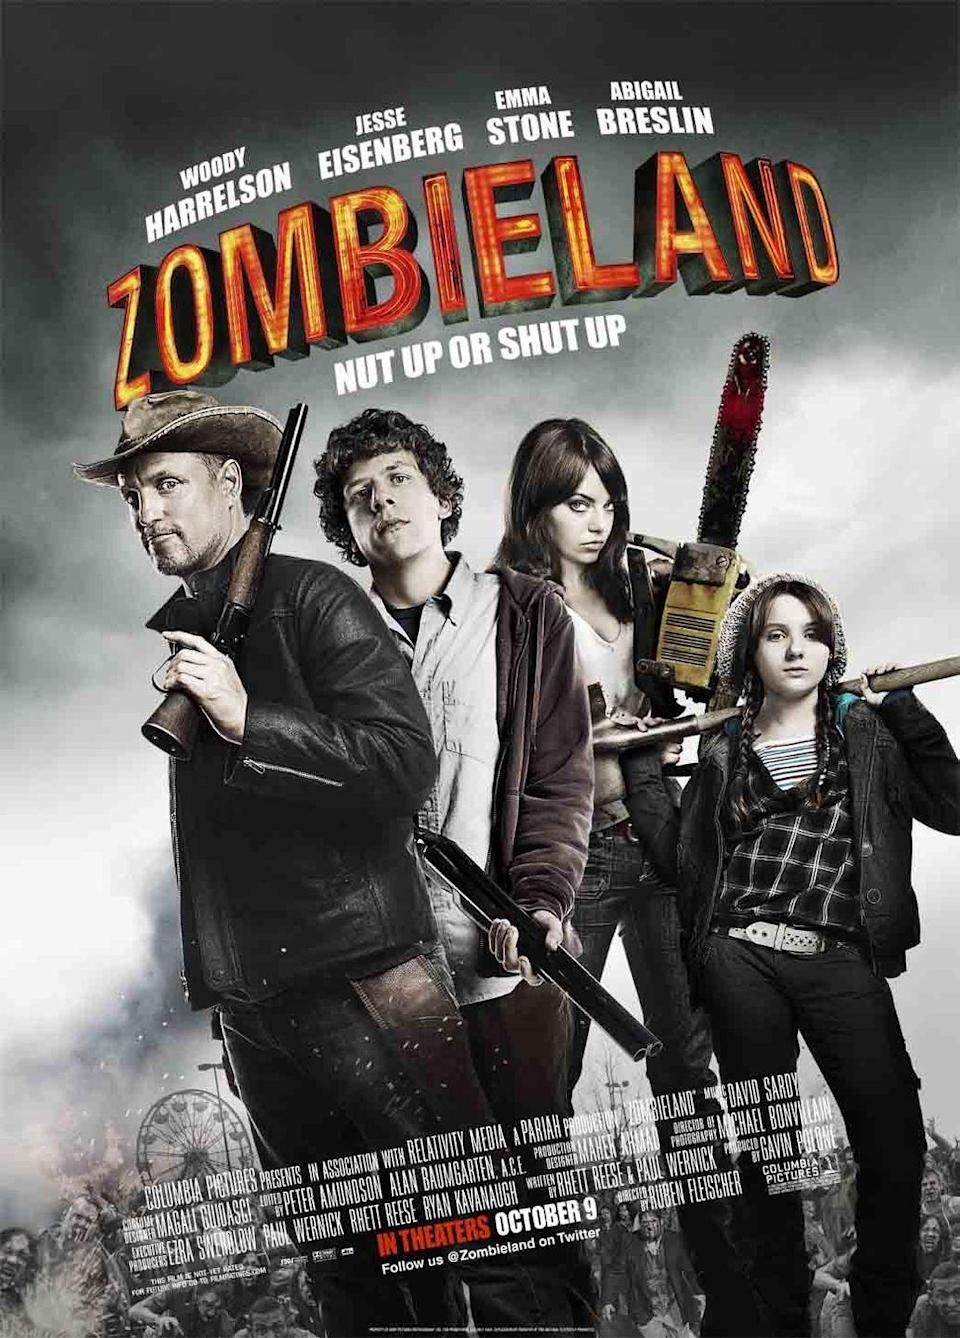 """<p><em>Zombieland</em> follows a nerdy college student (Jesse Eisenberg) who finds himself on a road trip with three other survivors during a zombie apocalypse. The result? A lot of hilarious gags and plenty of zombie gore — not to mention one of the most iconic <a href=""""https://www.goodhousekeeping.com/life/entertainment/g31119057/best-celebrity-cameos/"""" rel=""""nofollow noopener"""" target=""""_blank"""" data-ylk=""""slk:celebrity movie cameos"""" class=""""link rapid-noclick-resp"""">celebrity movie cameos</a> of all time.</p><p><a class=""""link rapid-noclick-resp"""" href=""""https://www.amazon.com/Zombieland-Woody-Harrelson/dp/B0030B624E?tag=syn-yahoo-20&ascsubtag=%5Bartid%7C10055.g.33546030%5Bsrc%7Cyahoo-us"""" rel=""""nofollow noopener"""" target=""""_blank"""" data-ylk=""""slk:WATCH ON AMAZON"""">WATCH ON AMAZON</a></p>"""